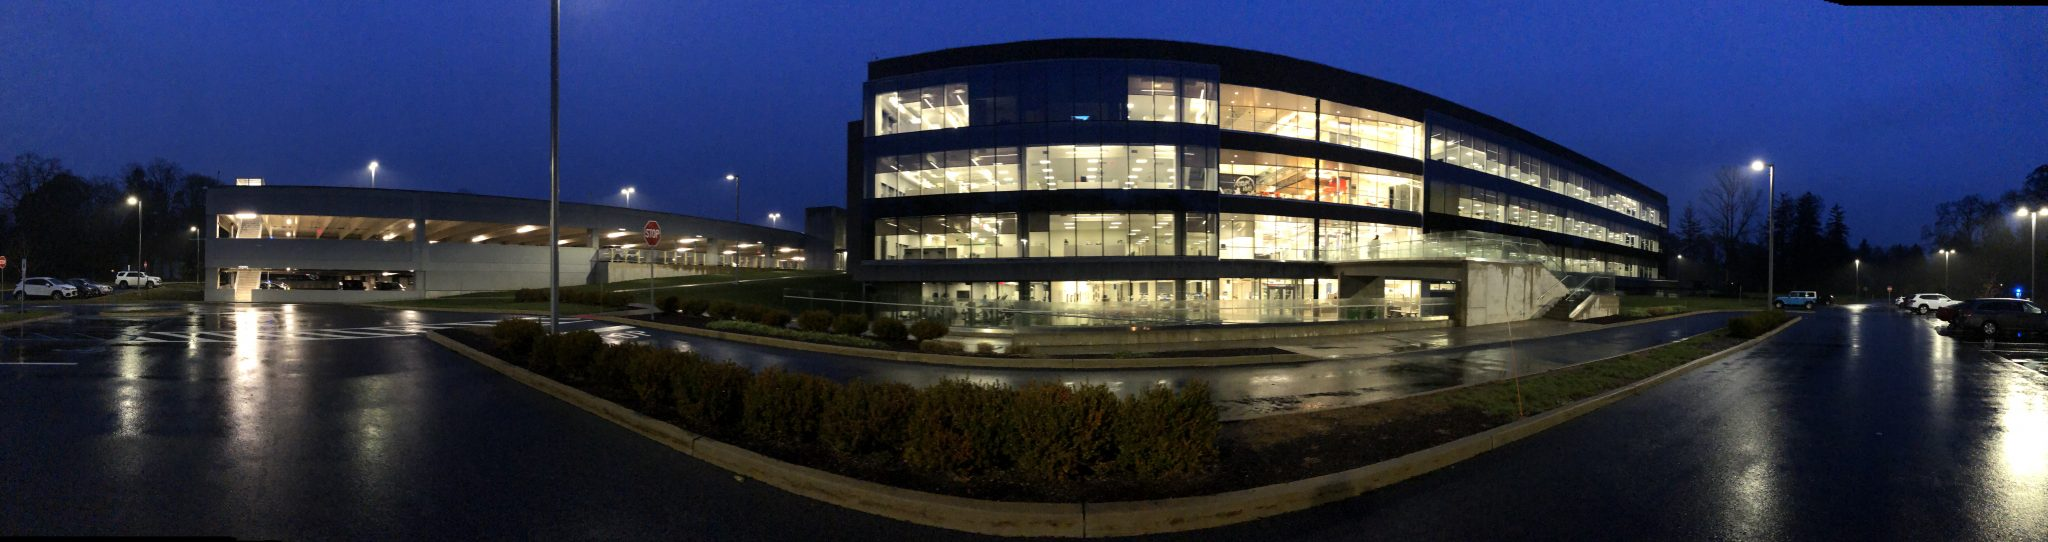 Panorama image of an insurance building at night with indigo sky and wet pavement with windows lit up.